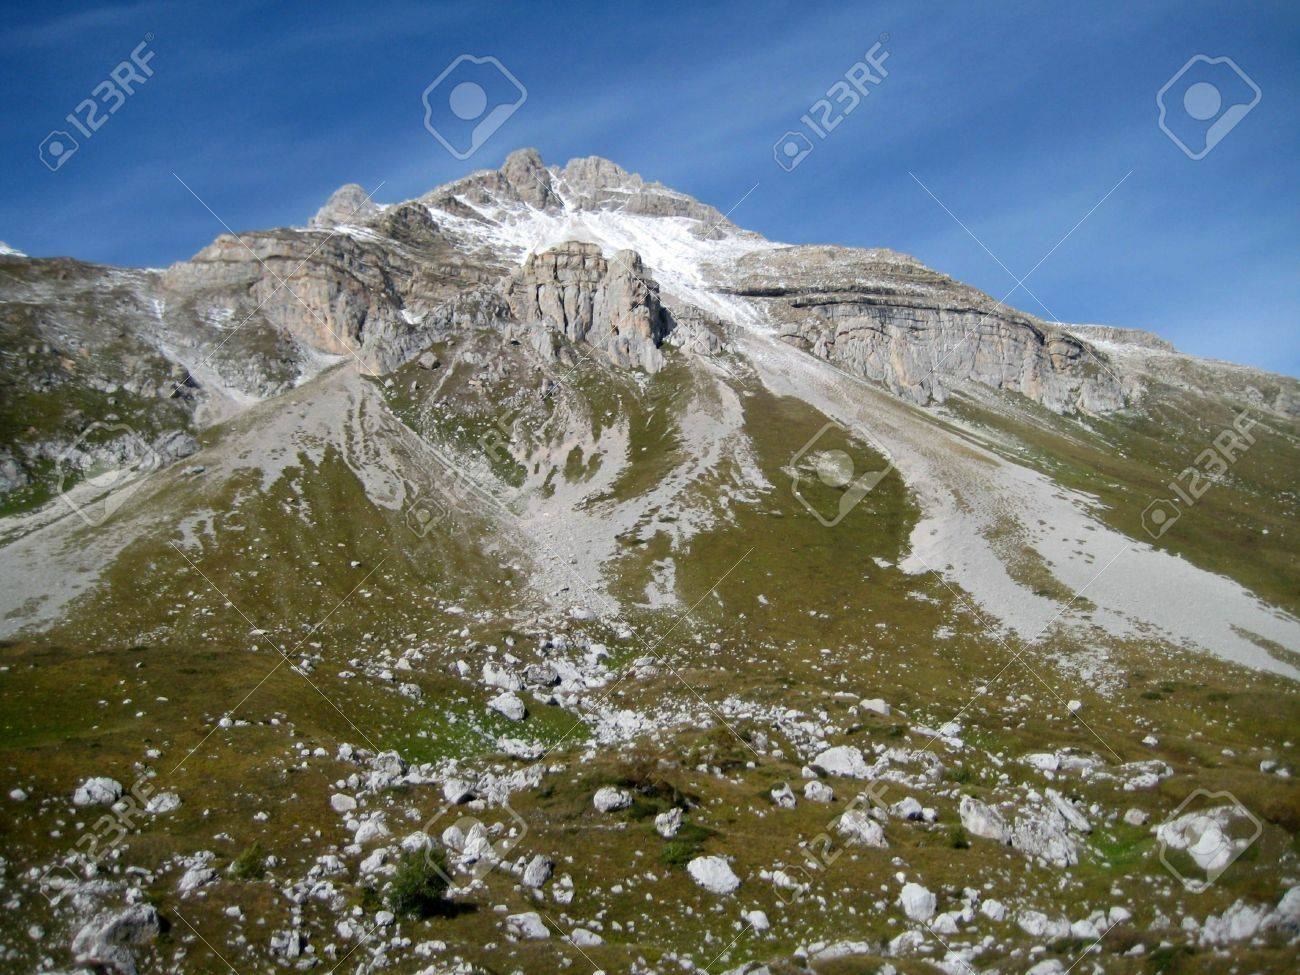 Mountains, caucasus, rocks, a relief, a landscape, the nature, a panorama, a landscape, a ridge, top, breed, the sky, reserve, a pattern, a background, a kind, a structure, a slope, peak, beauty, bright, a file, clouds, snow, a glacier, a stone Stock Photo - 6767476